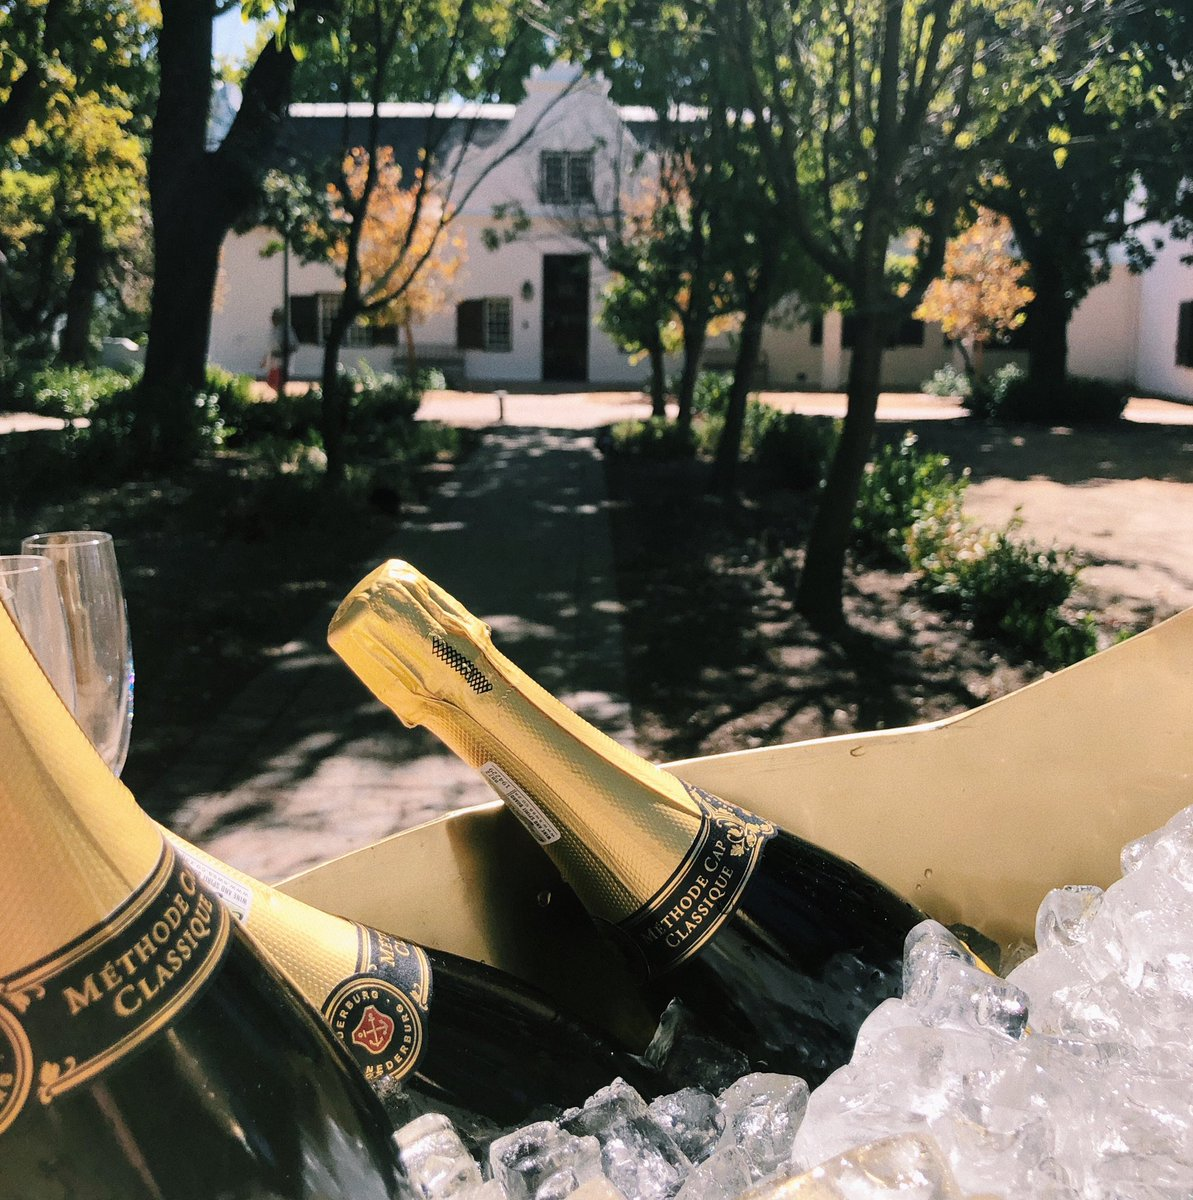 It isn't #Harvest2020 without a bit of bubbly to go around. Let's get the Harvest at Dusk Festival started 🥂